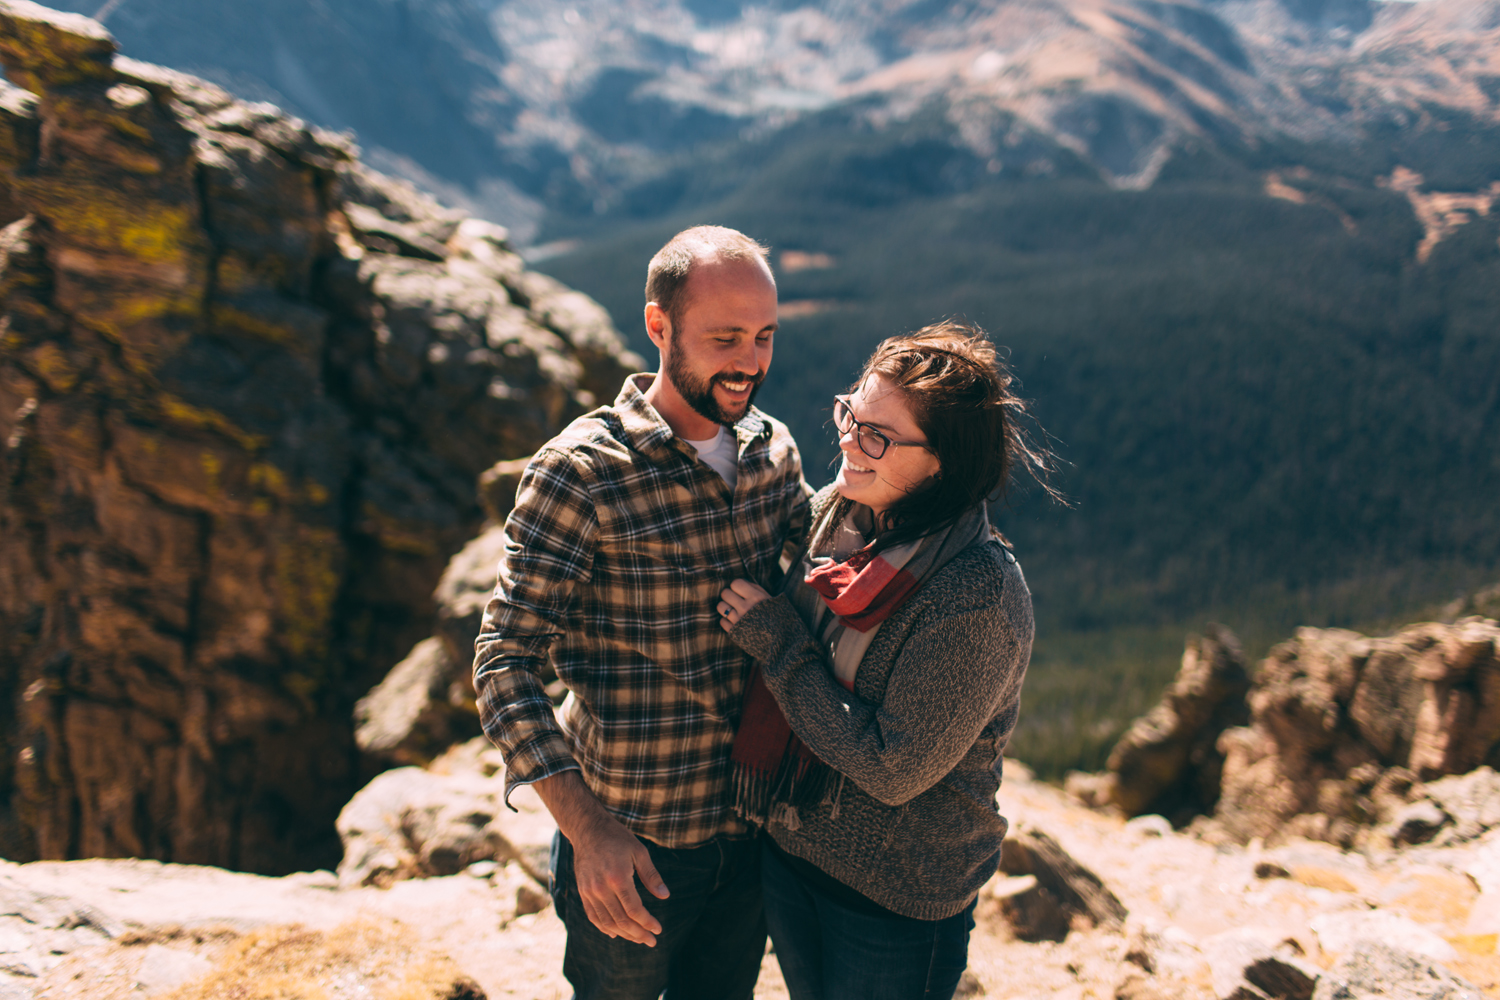 Jillian VanZytveld Photography Rocky Mountain National Park Engagement Portraits - 57.jpg